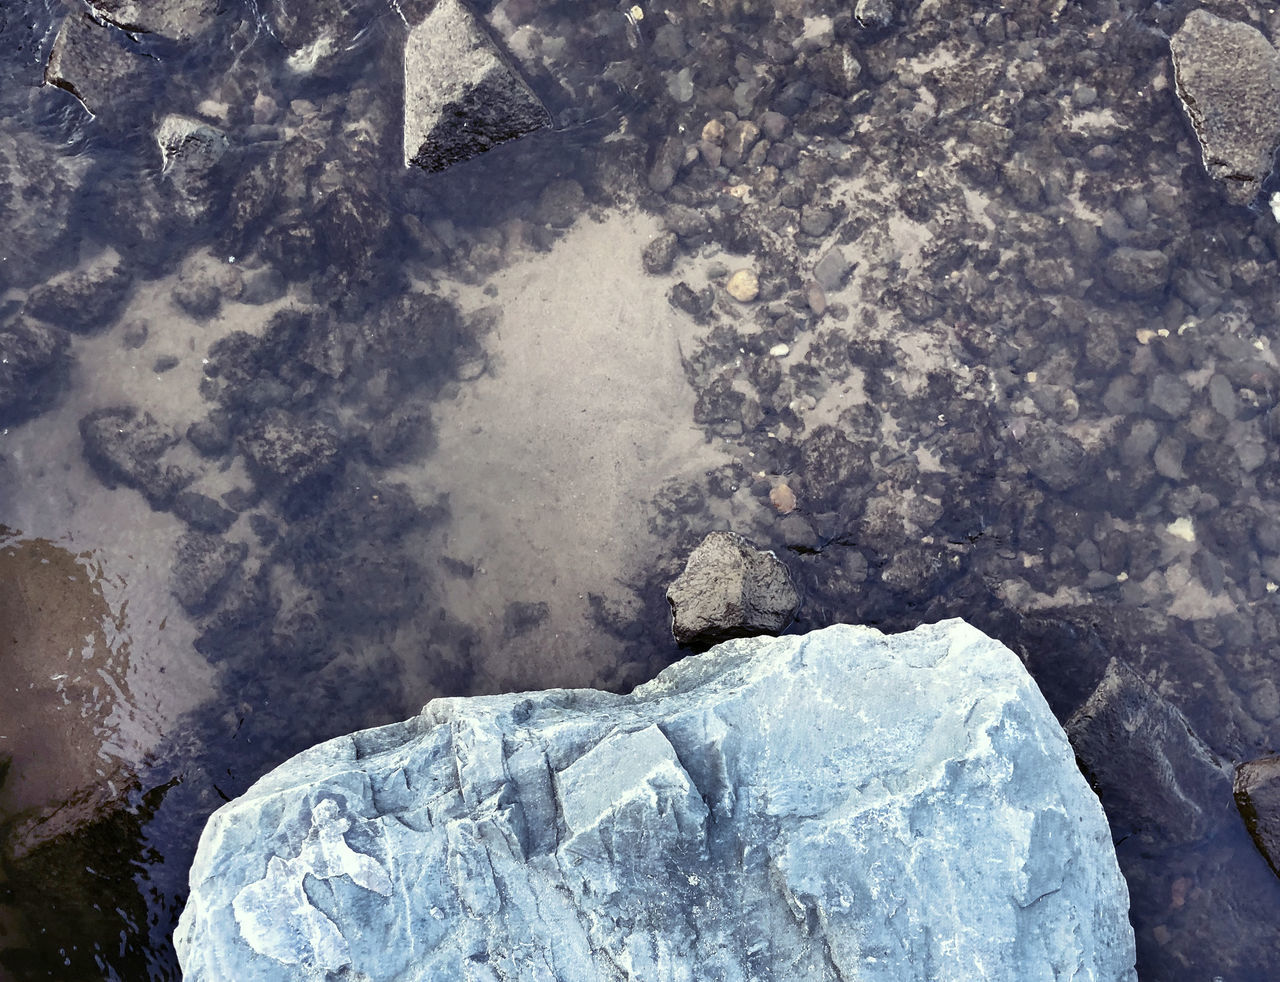 ice, nature, no people, rock, high angle view, day, solid, cold temperature, frozen, water, rock - object, winter, close-up, outdoors, textured, glacier, geology, rough, environment, purity